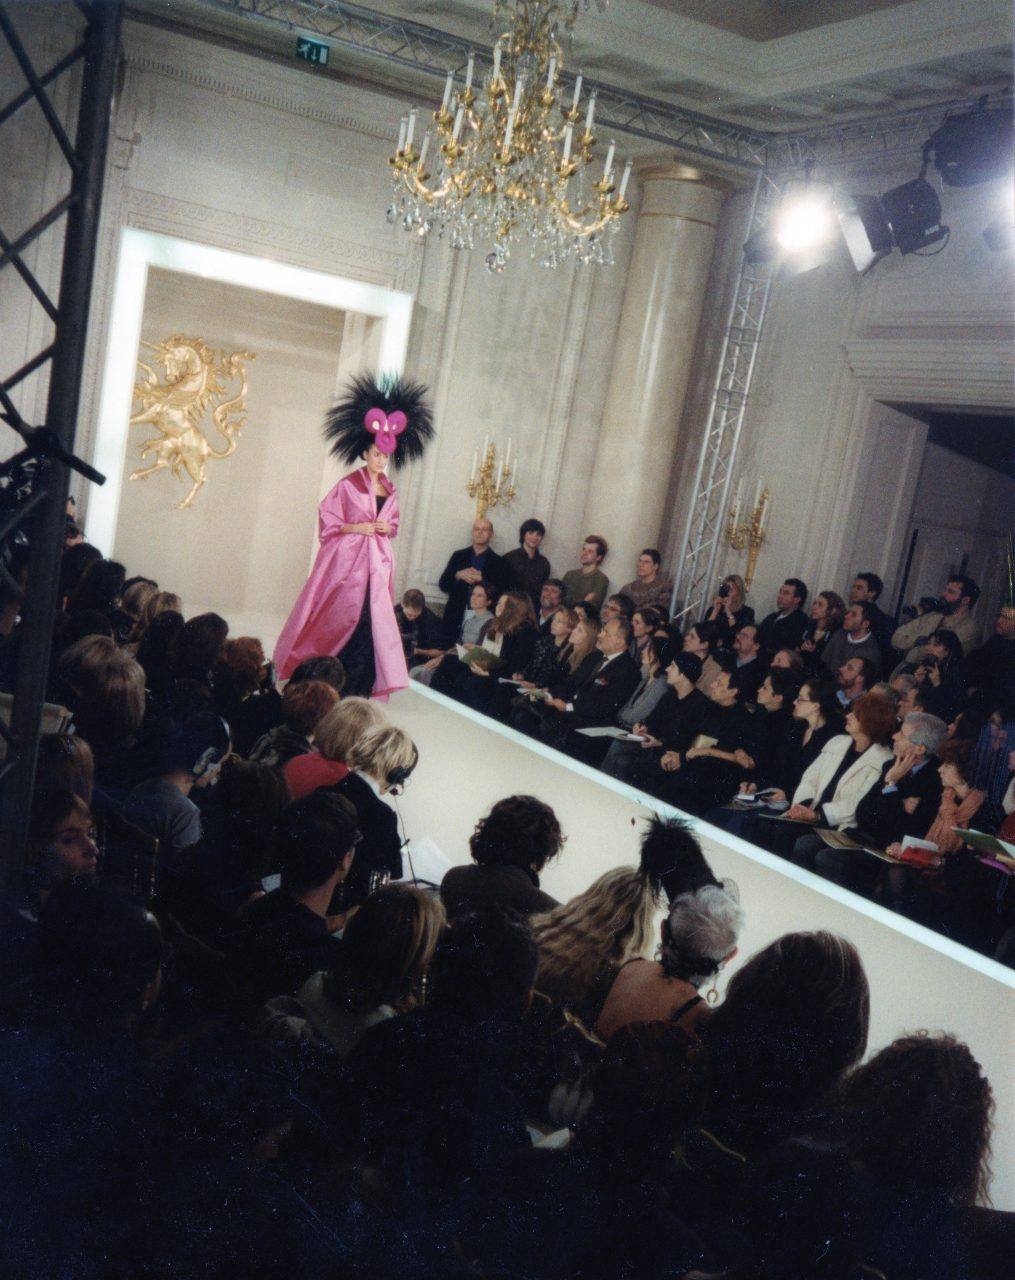 Designet en catwalk og en ebhjørningsskulptur for Philip Treacy Fashion Show, Paris Fashion Week.